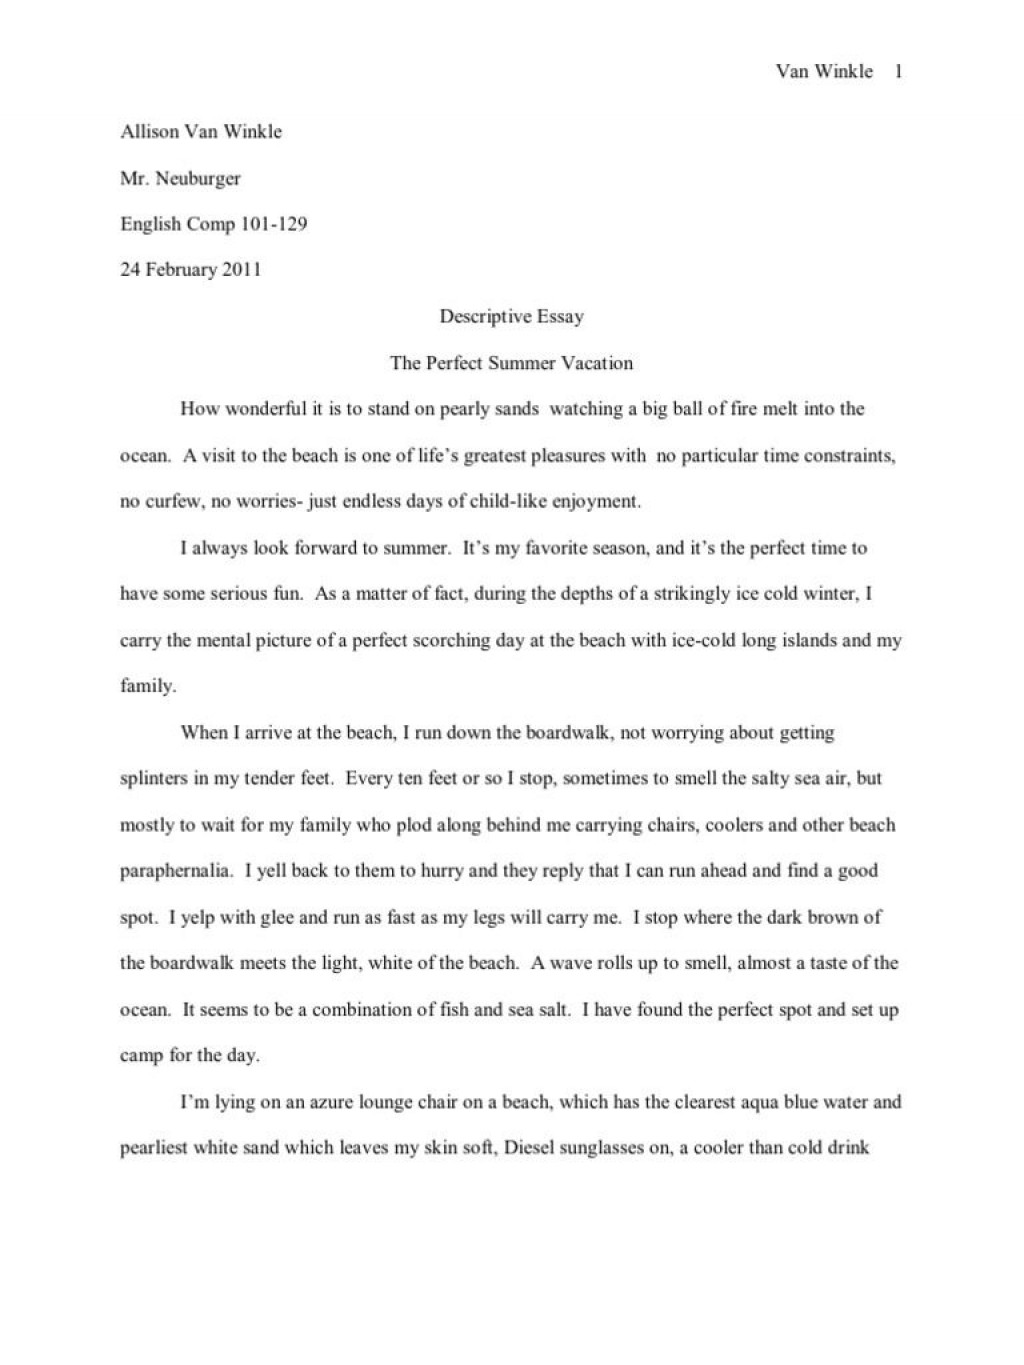 011 Descriptive Essay About The Beach Impressive At Night Writing In Summer Large